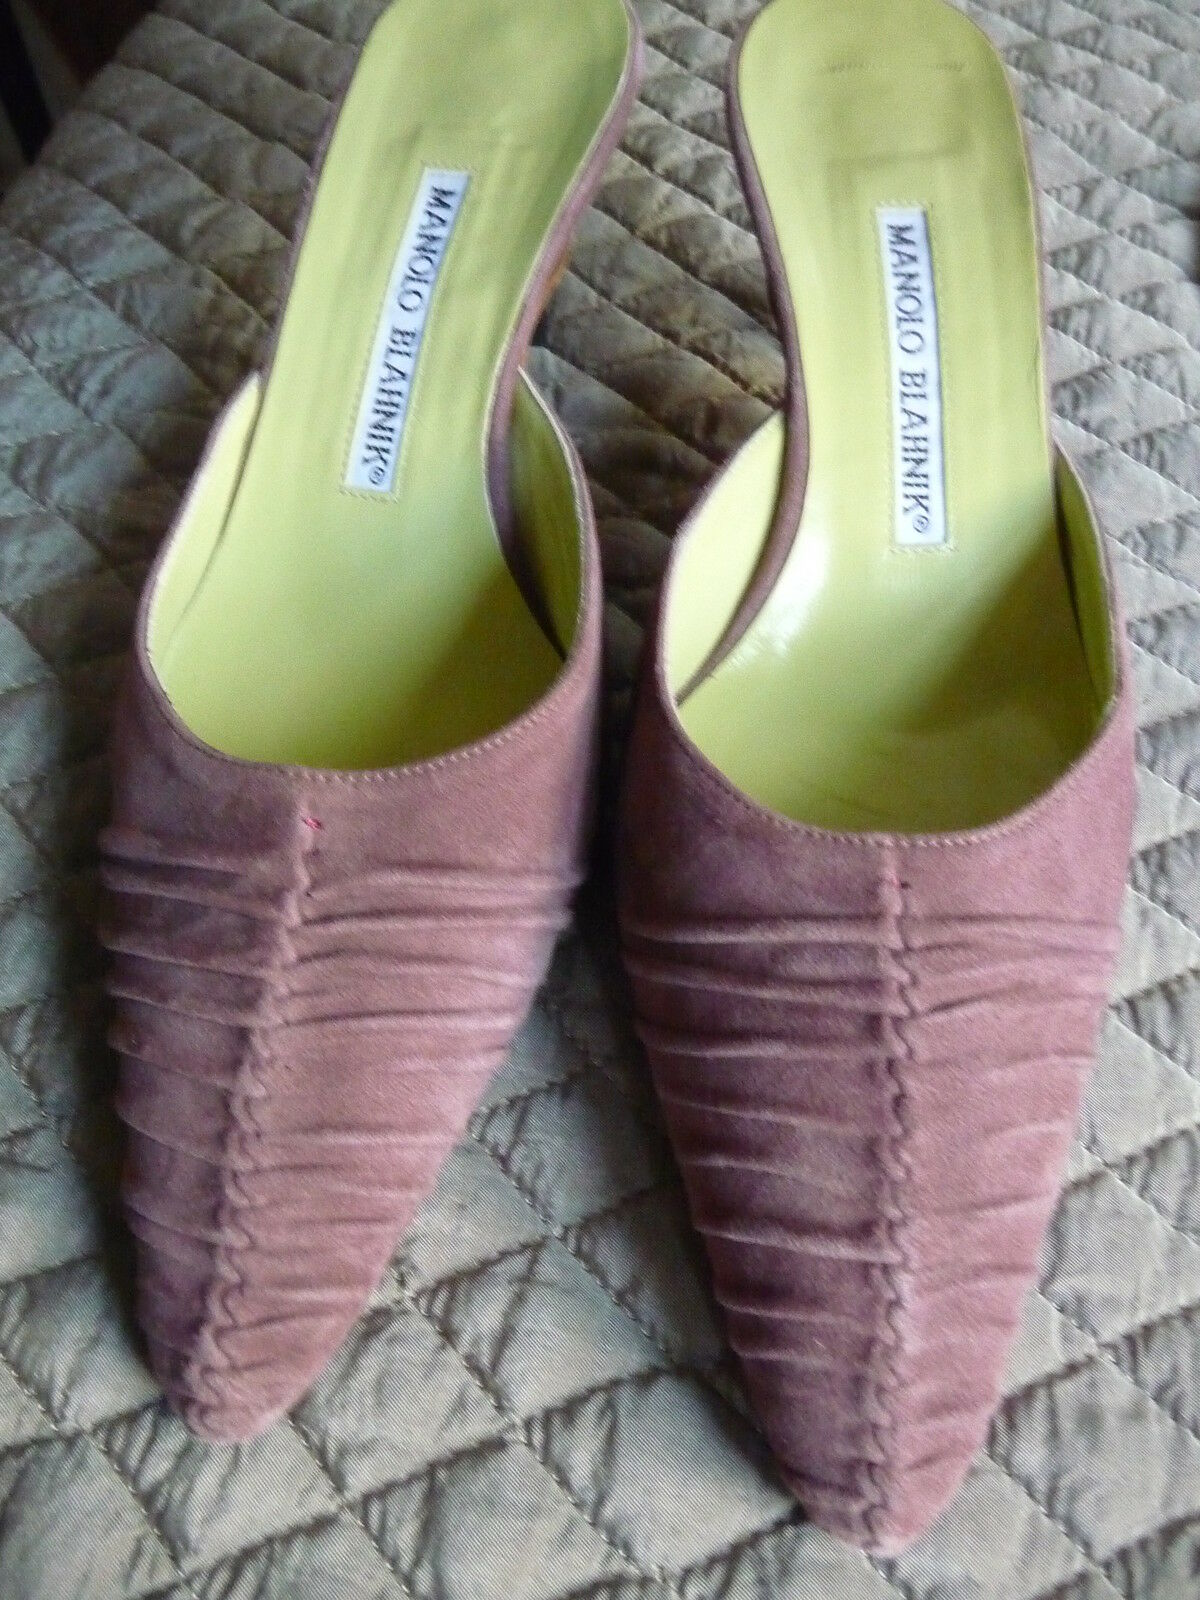 Manolo Blahnik mauve suede ruched mules size 36 w 2 1 4 inch heel